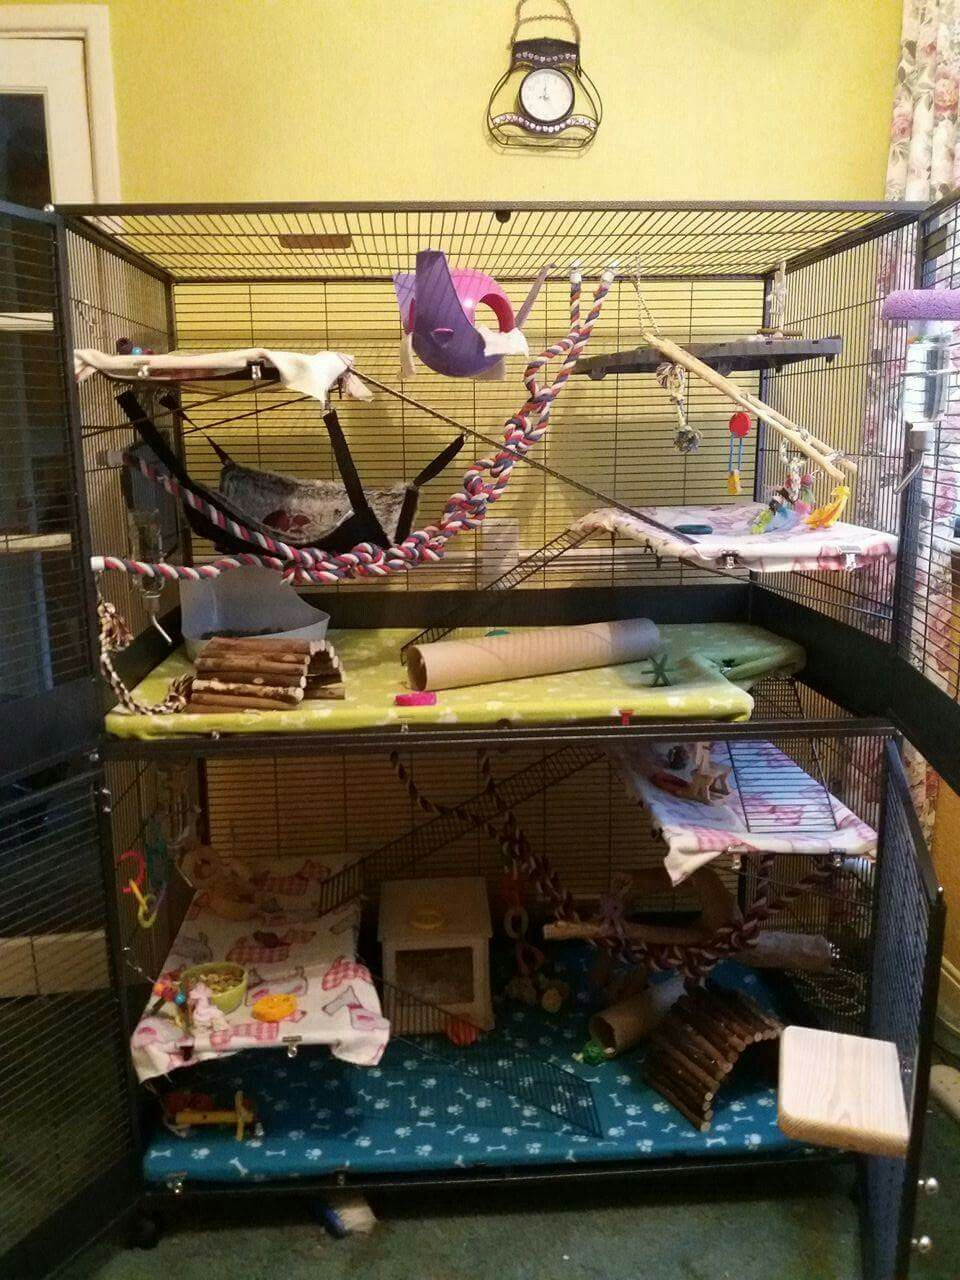 My Most Recent Set Up Trying To Add More Fun Things 3 Savic Suite Royal Xl Housing 3 Cutie Rats Pet Rat Cages Pet Rats Diy Stuffed Animals